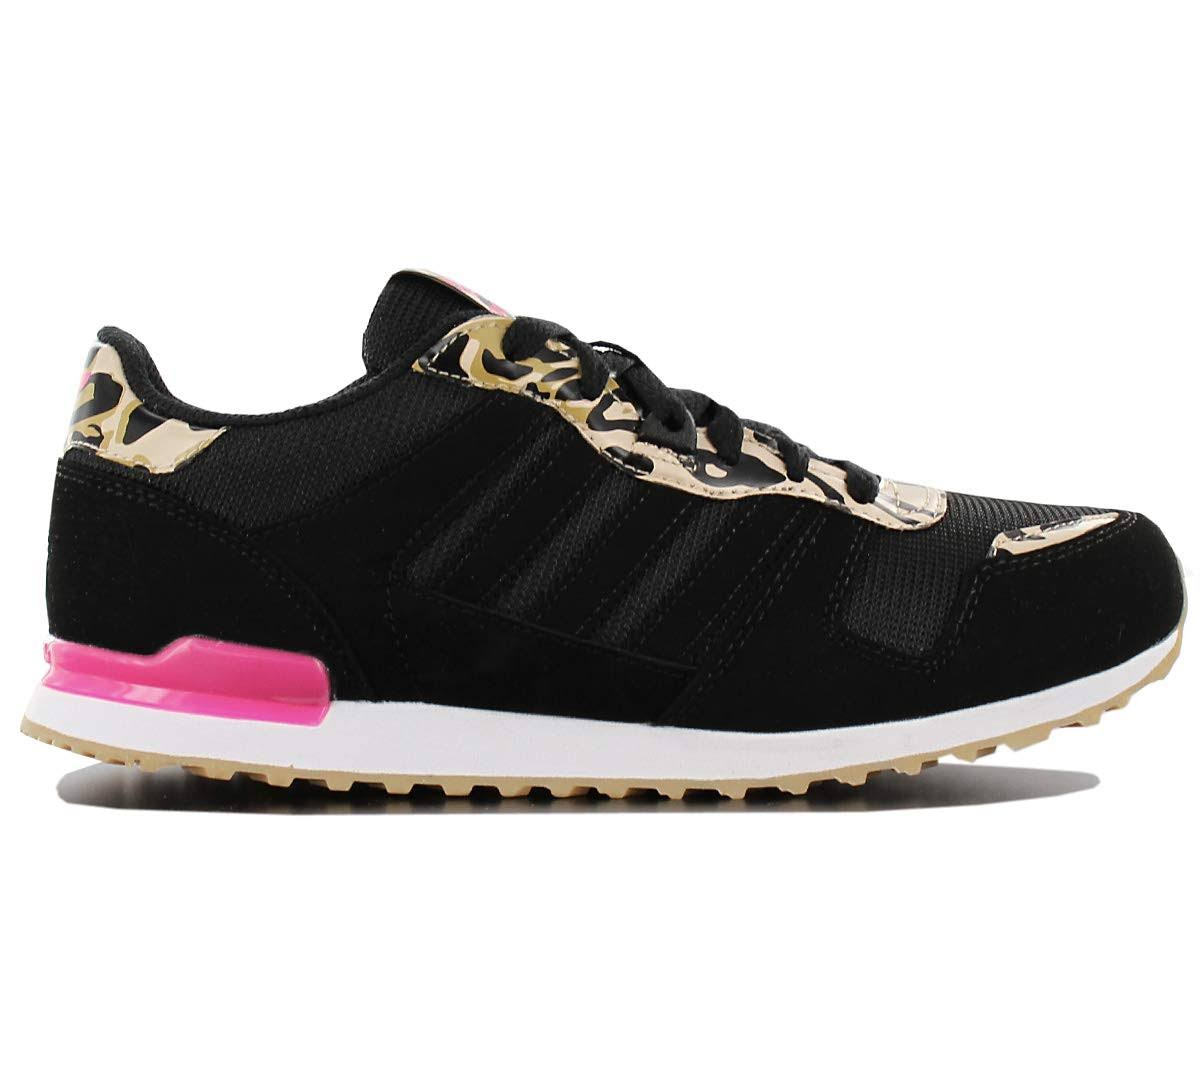 Adidas ZX 700 K boys's Children's Shoes (Trainers) in Multicolour